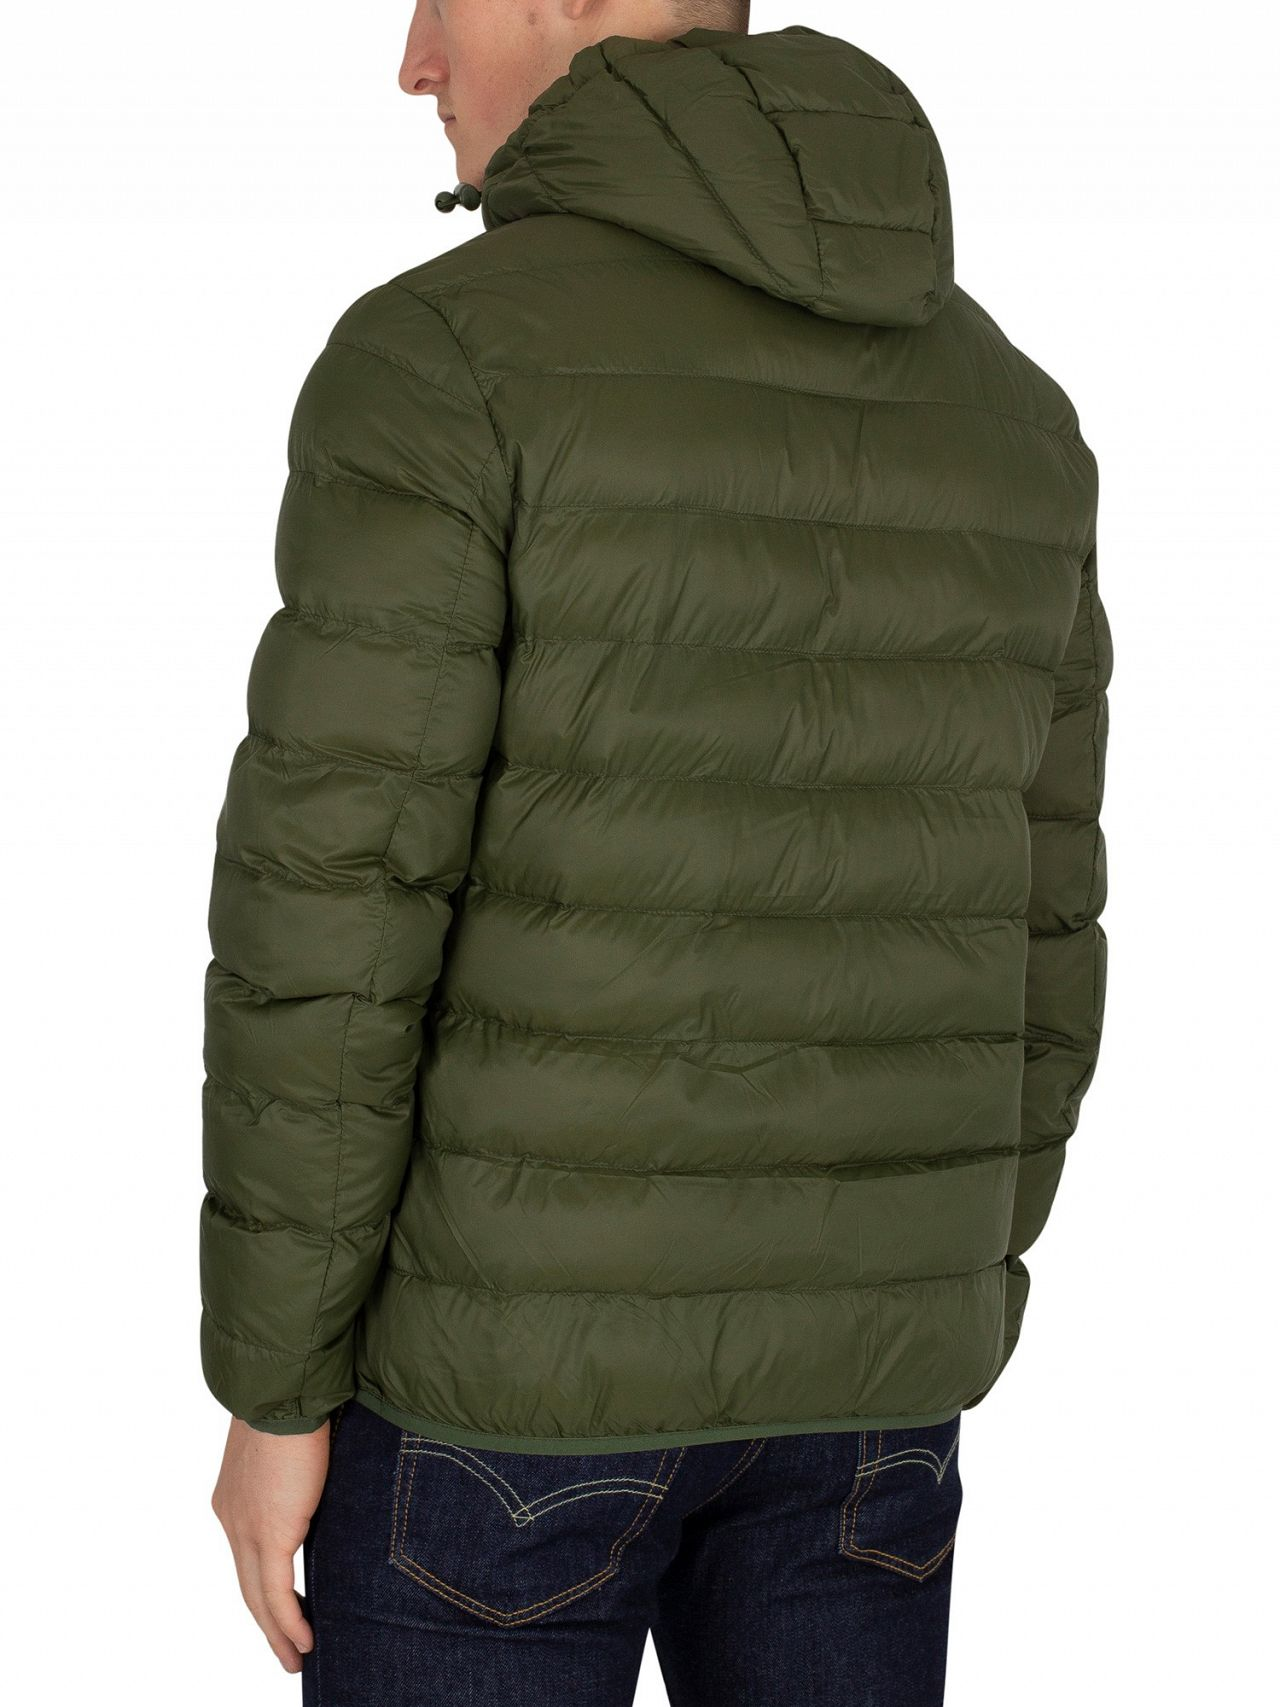 05f95243fd12 Lyle & Scott Woodland Green Lightweight Puffer Jacket | Standout